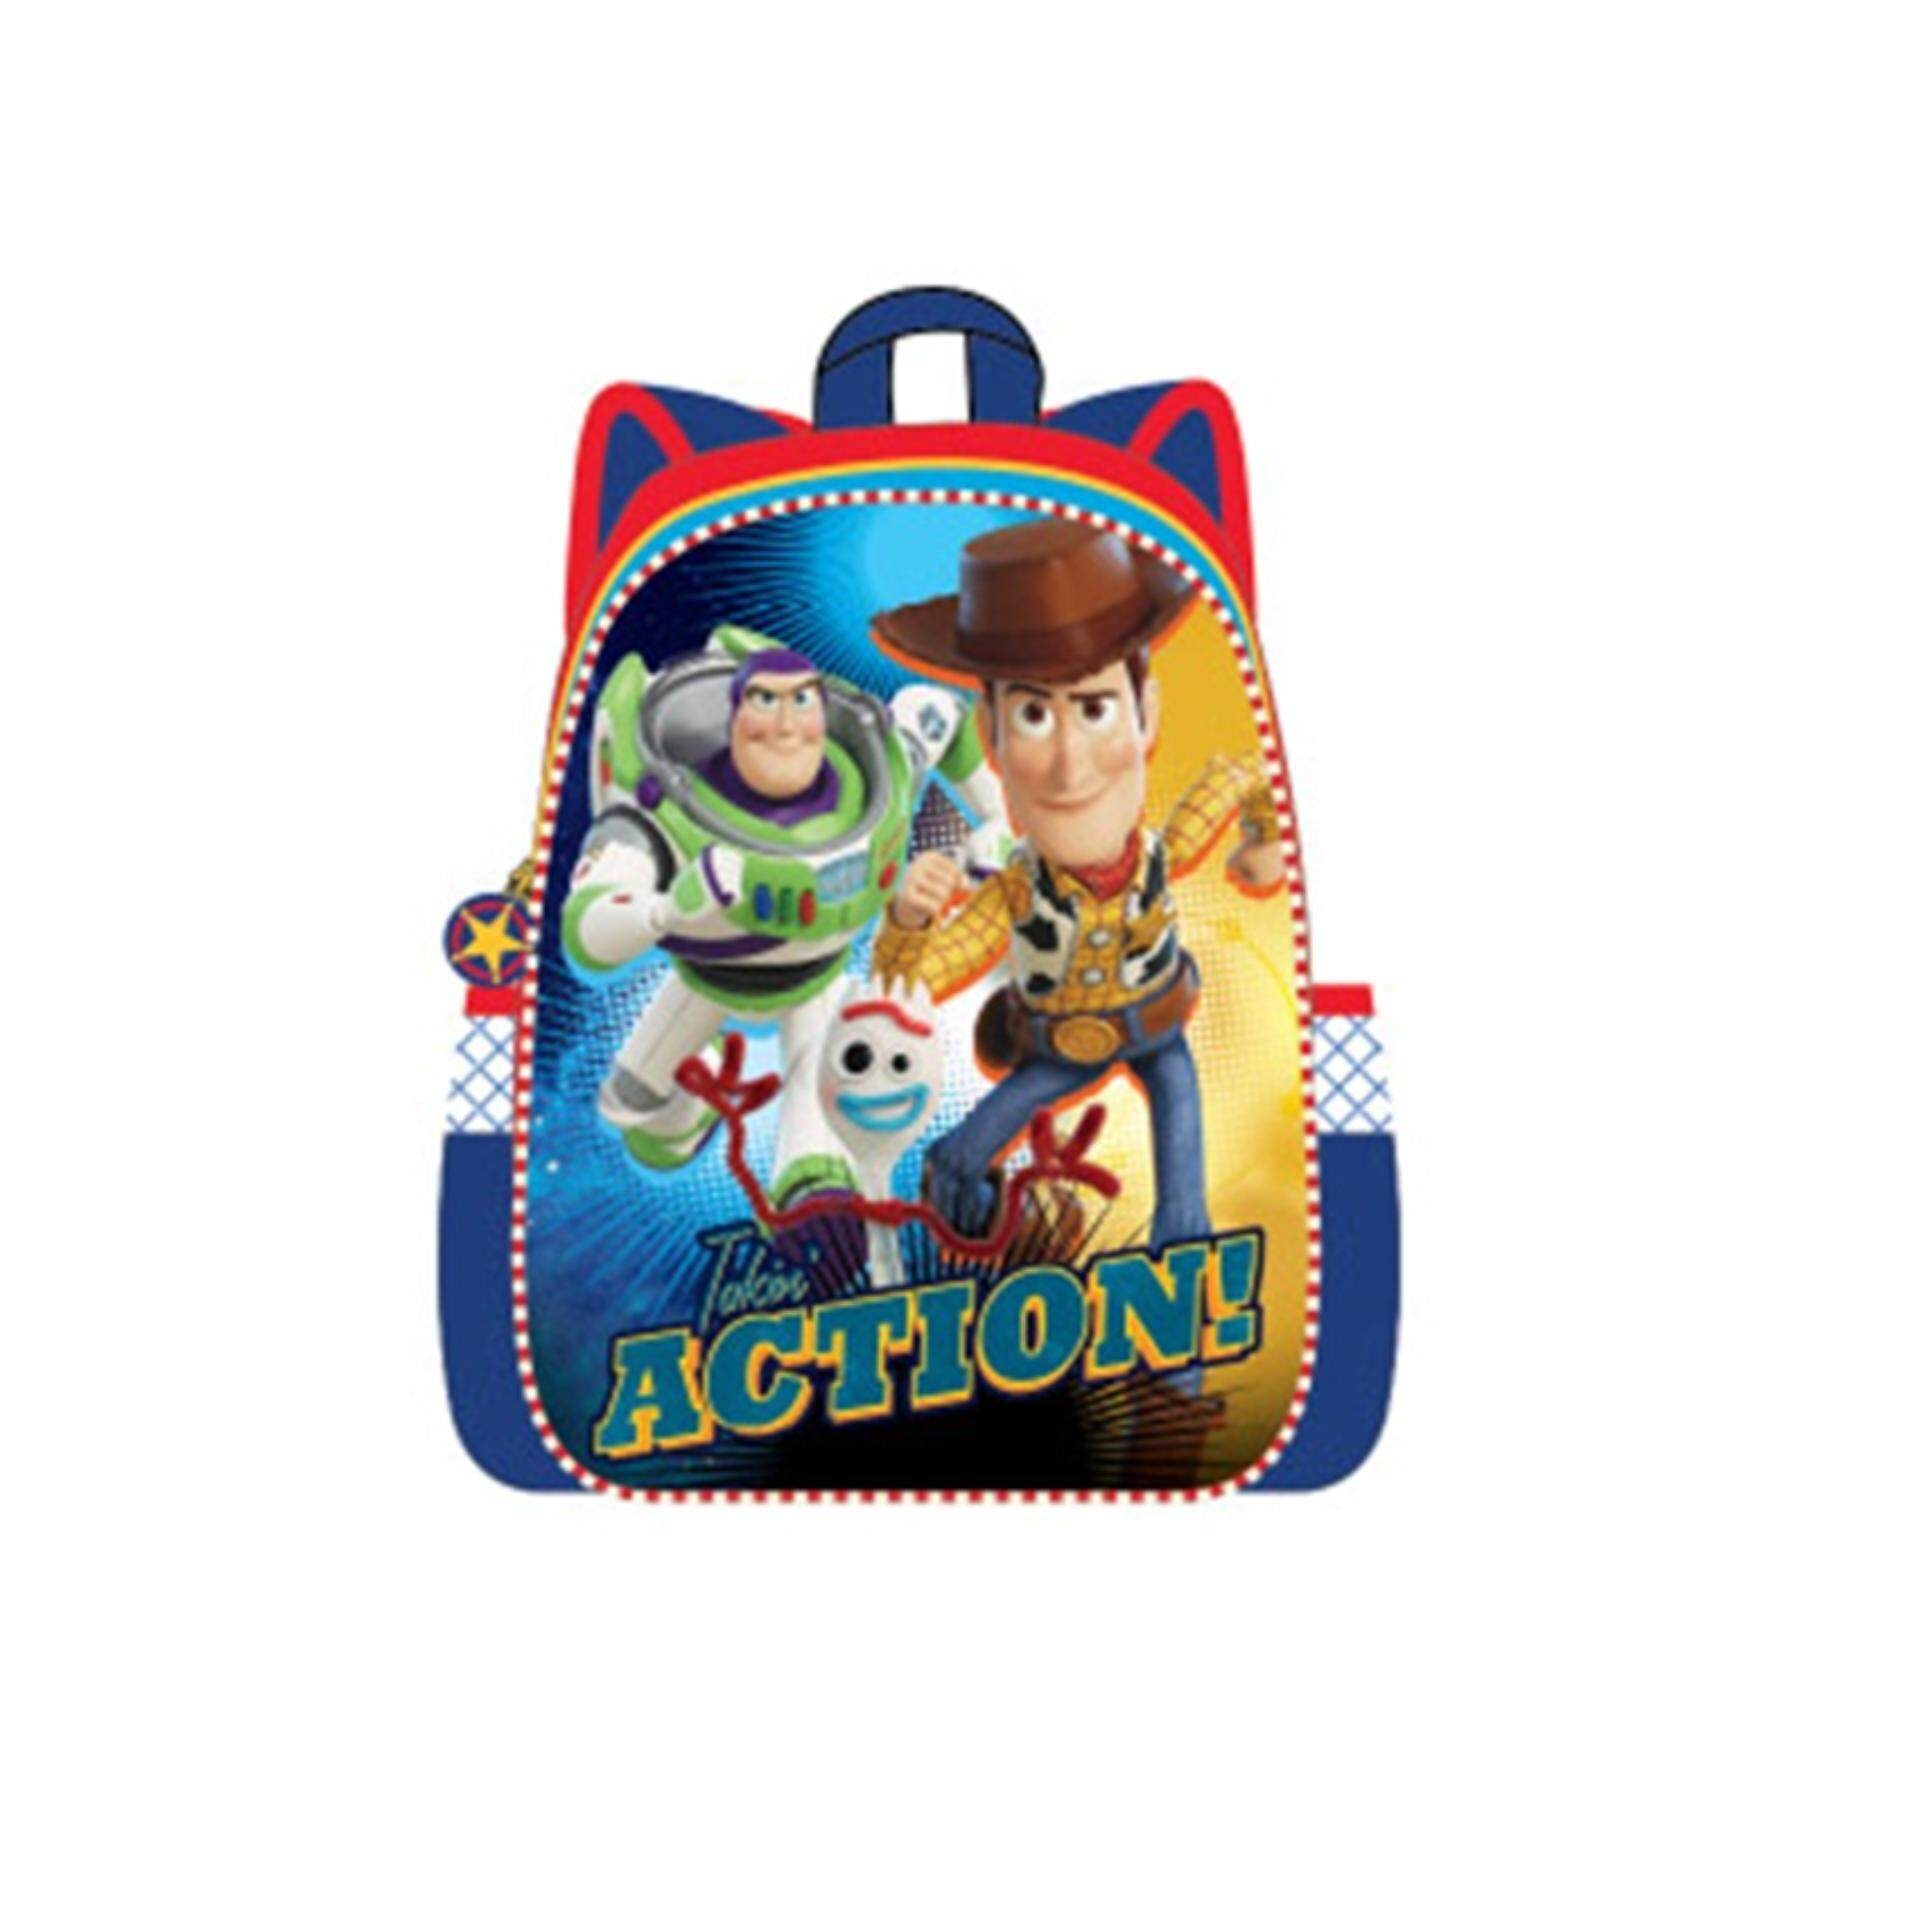 Disney Pixar Toy Story 4 Backpack School Bag 12 Inches - Multicolour